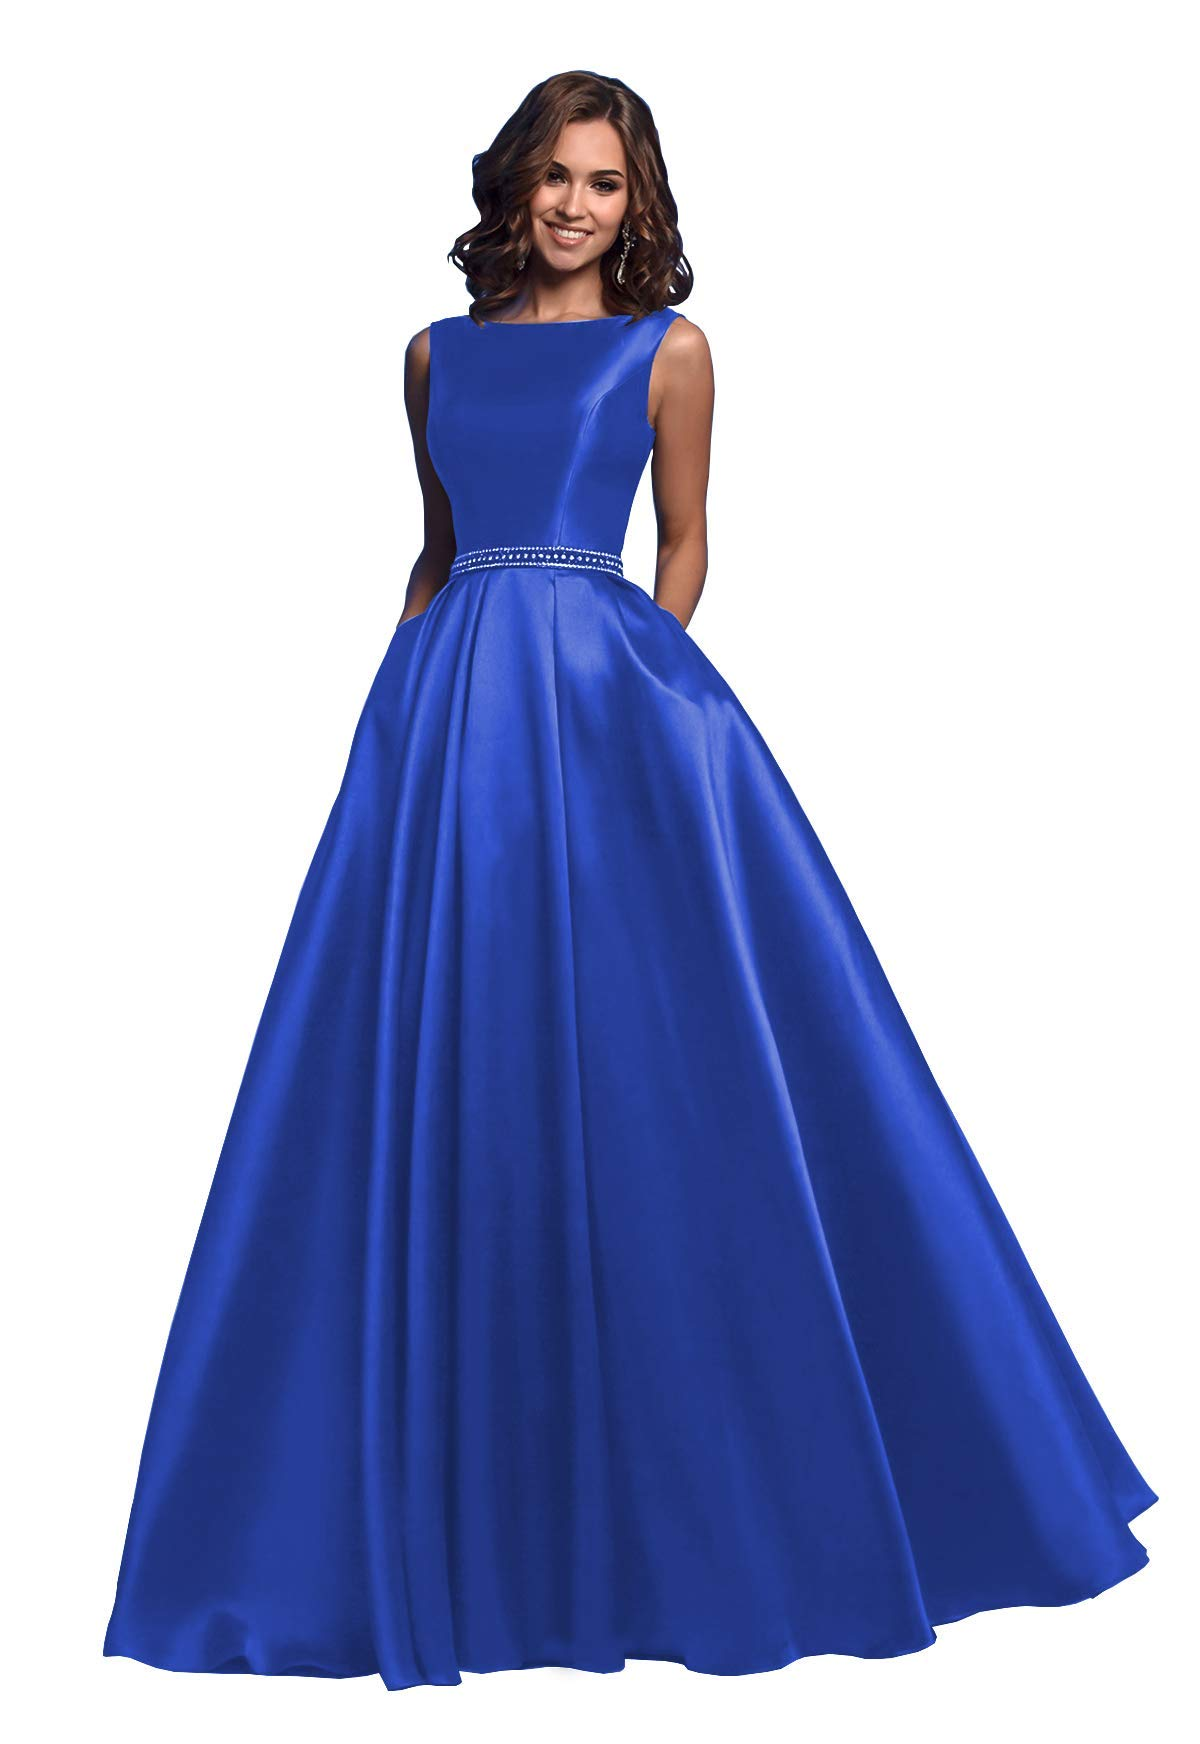 Available at Amazon: Elleybuy Women's A-Line Sleeveless Beaded Satin Long Prom Dress with Pockets Open Back Formal Evening Gown 2020